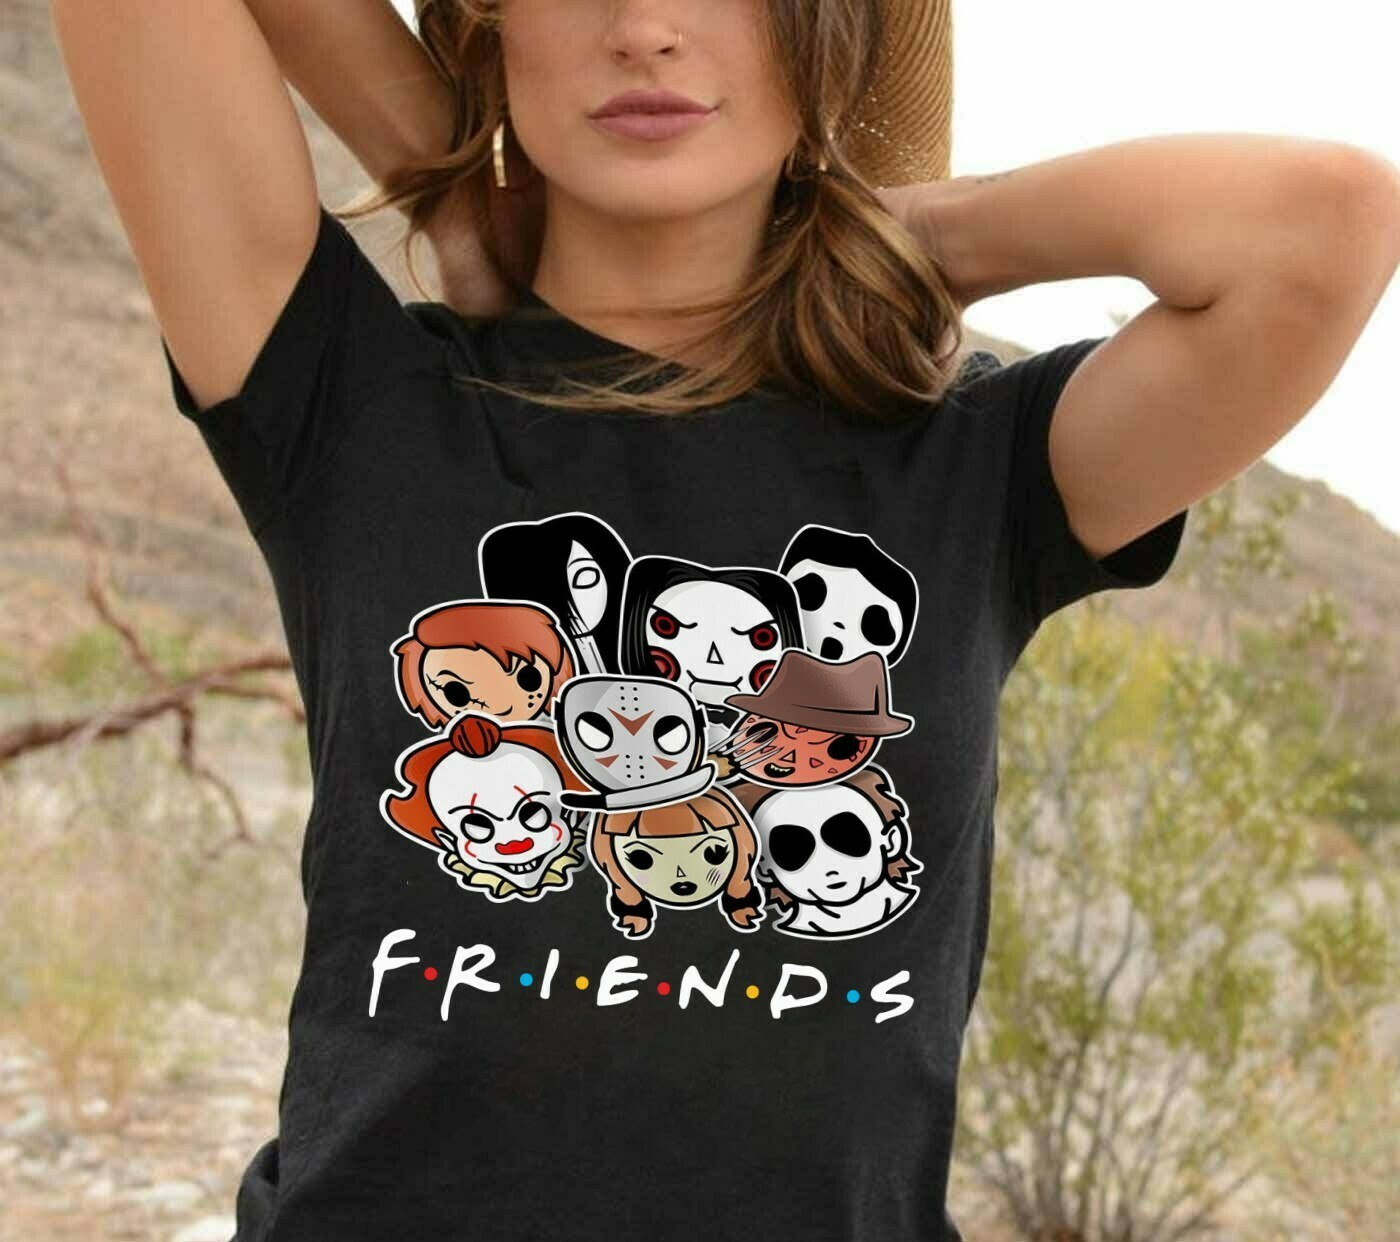 Friends Horror Face Squad Gifts for Fan Lover Horror Movie Friday The 13th Villains Halloween Horror movie mashup squad T-Shirt Long Sleeve Sweatshirt Hoodie Jolly Family Gifts